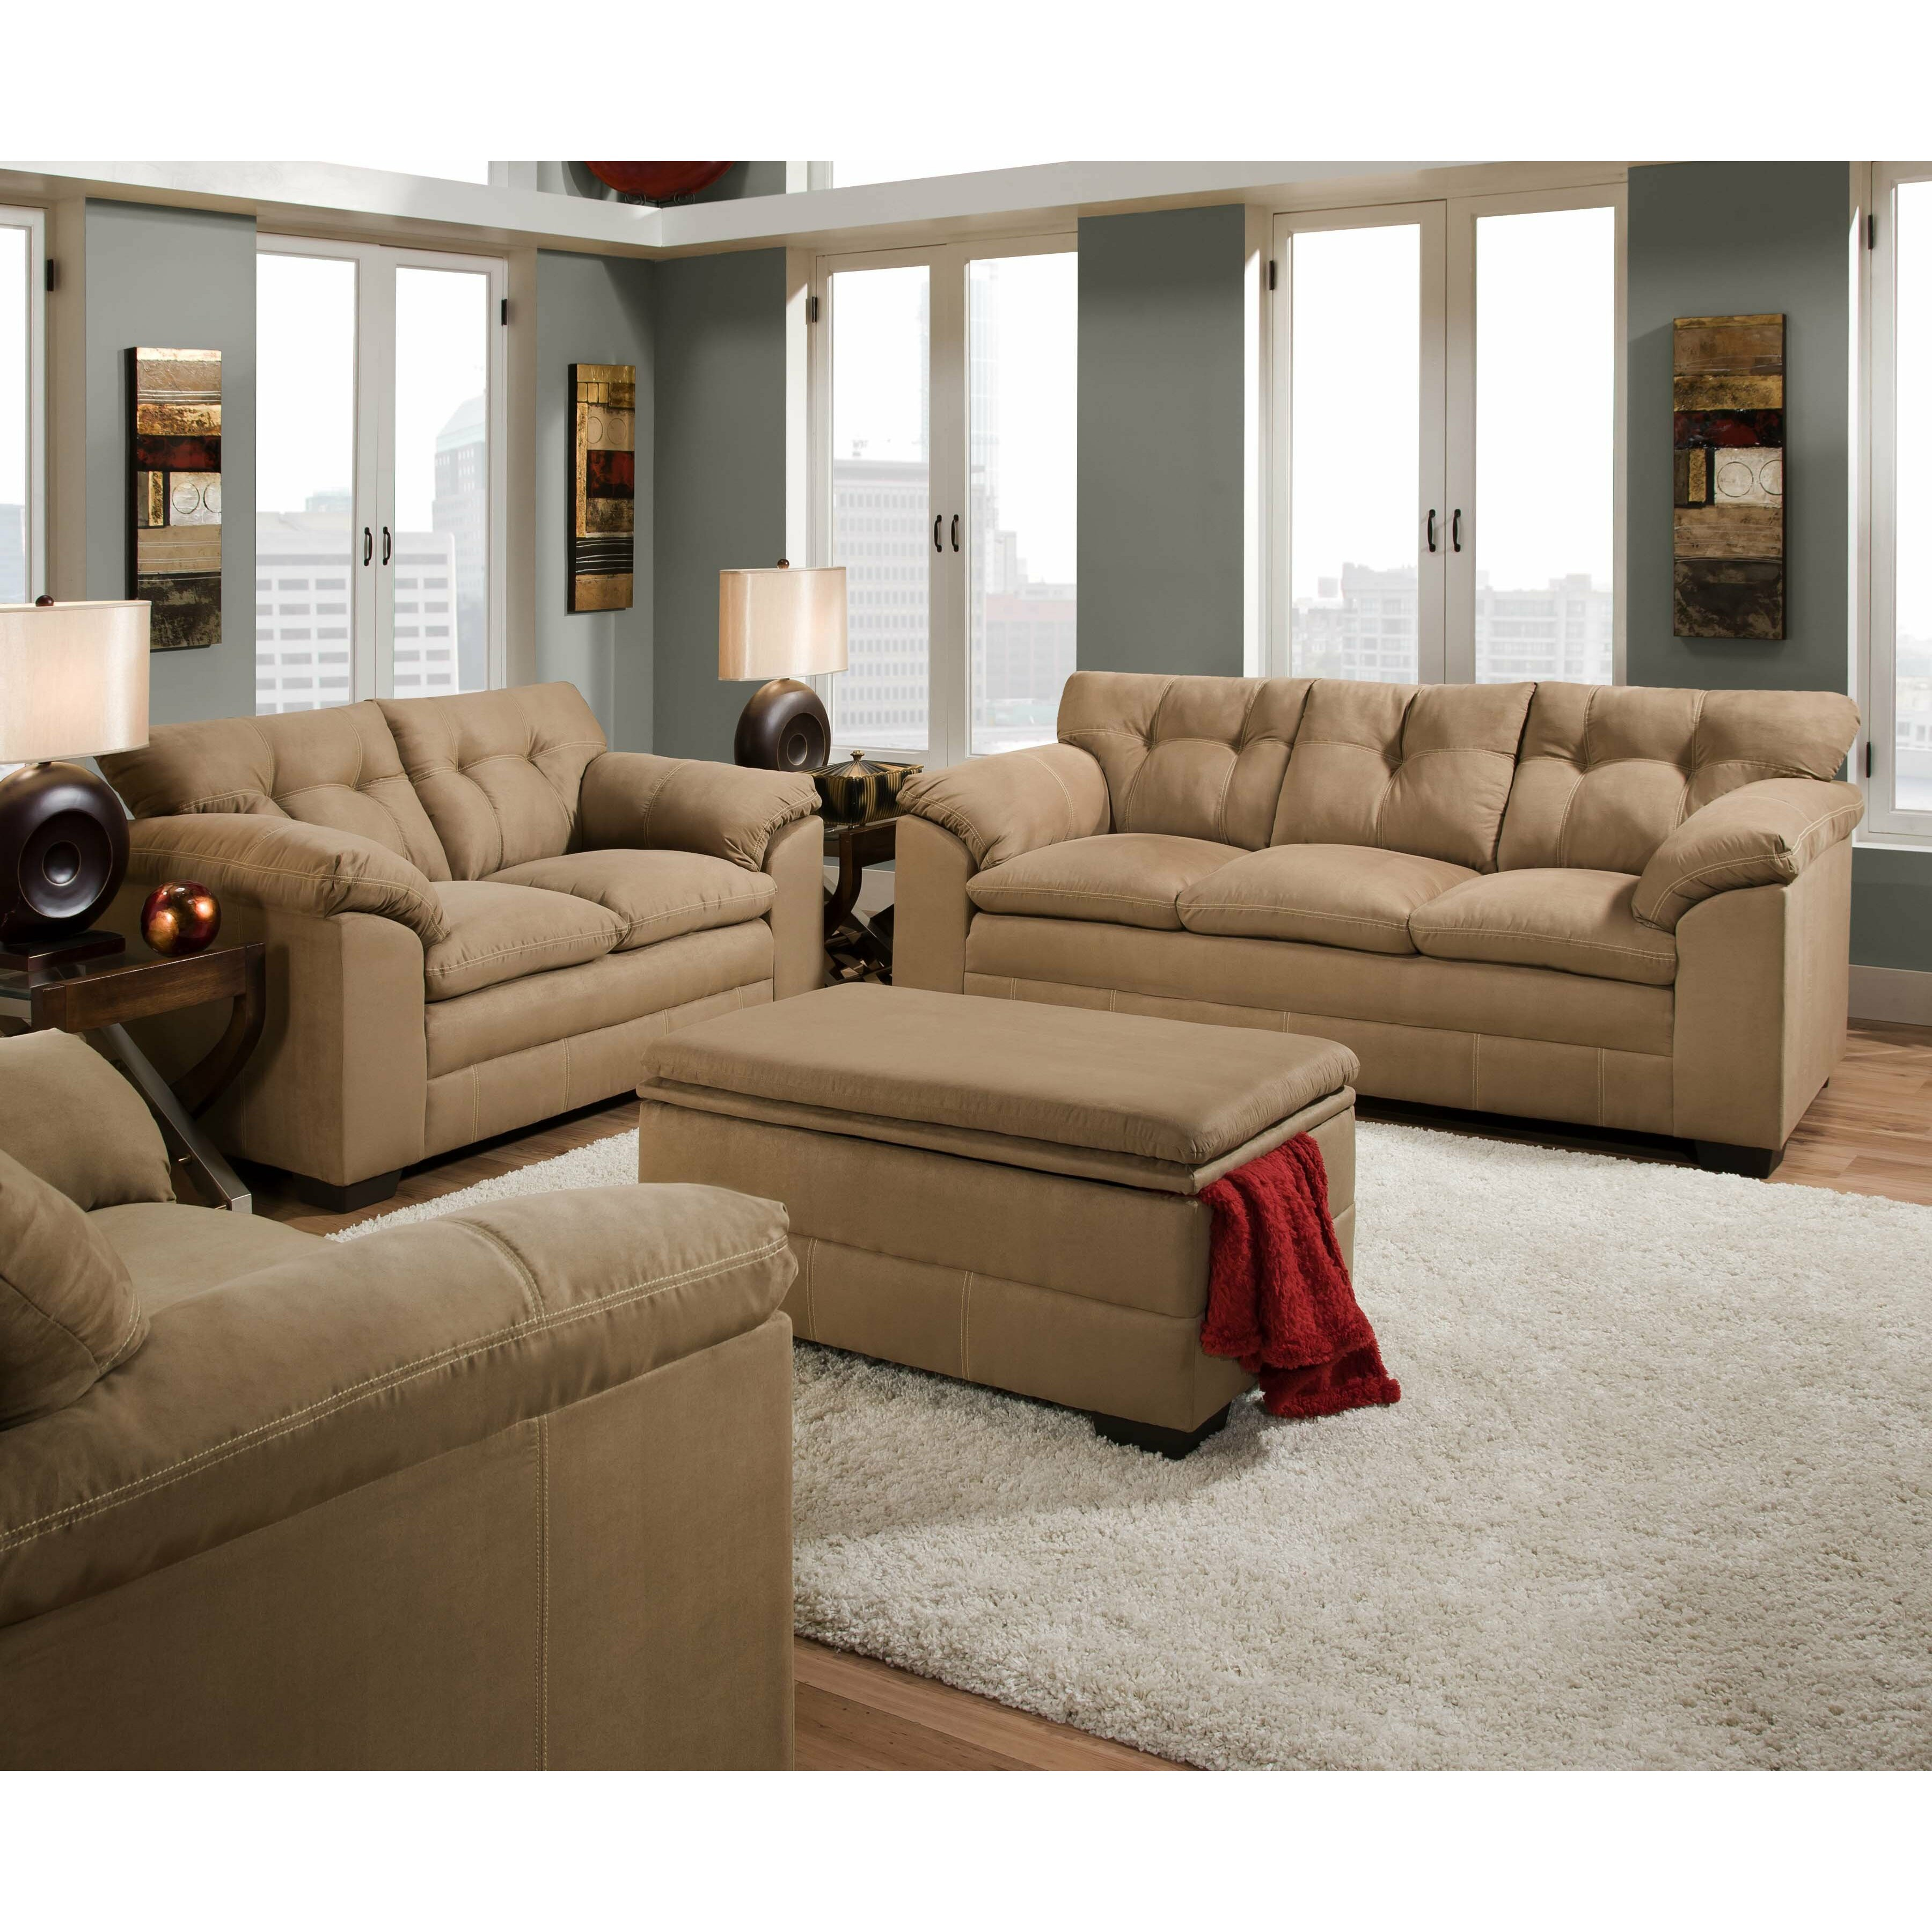 Simmons Velocity Sofa Review Home The